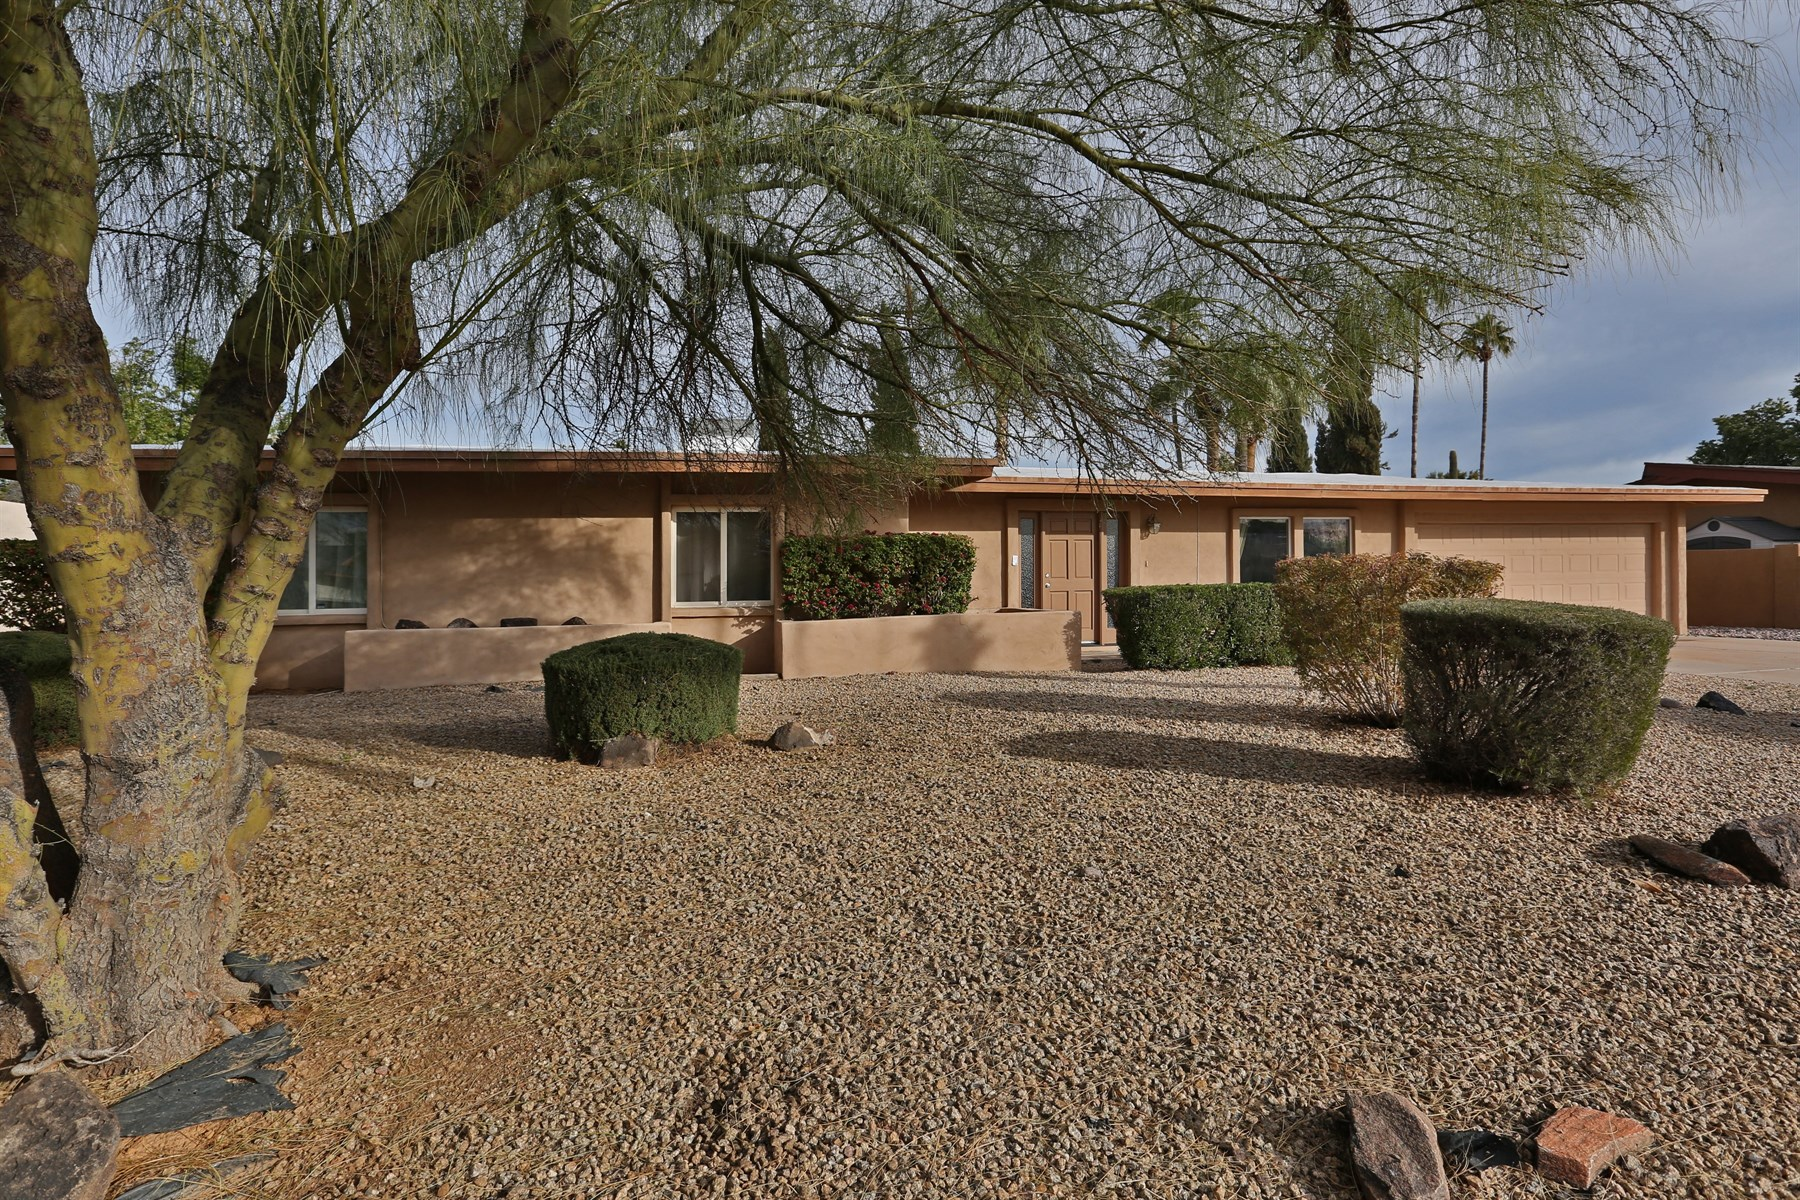 Property For Sale at Gorgeous home located in an desirable Scottsdale neighborhood